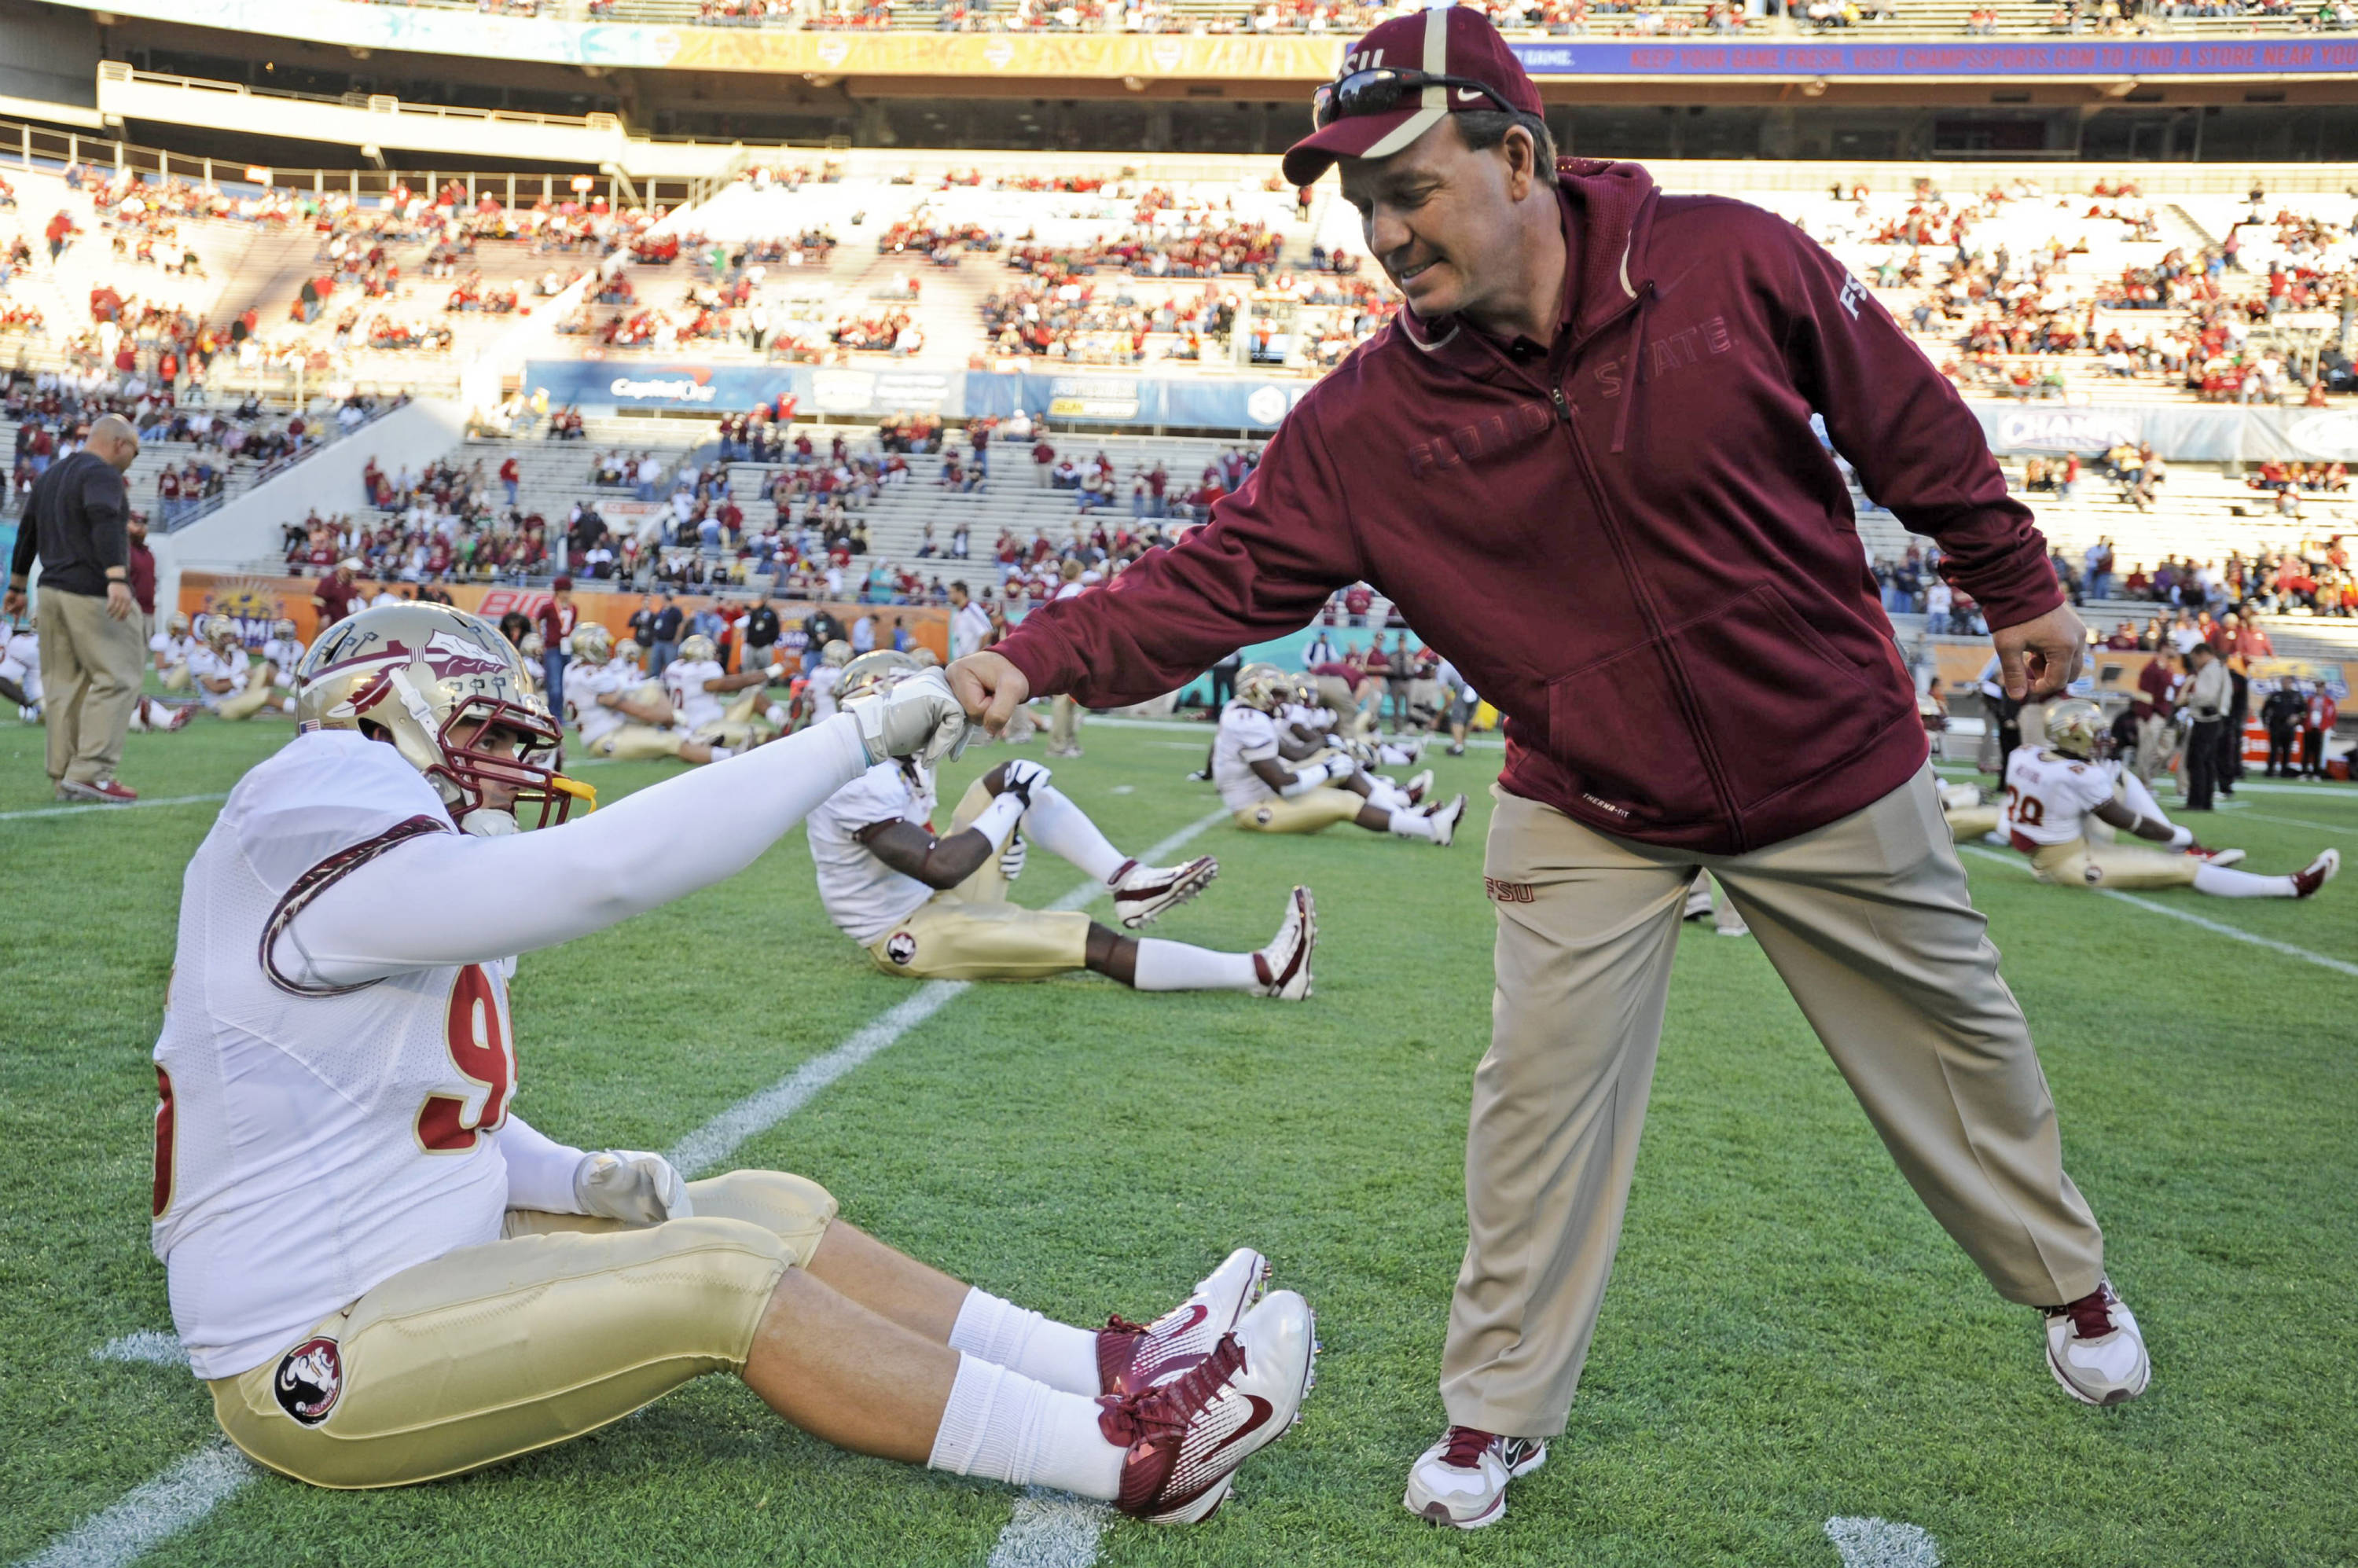 Jimbo Fisher and Bjoern Werner (95) meet during warmups before the Champs Sports Bowl.  Werner was one of the most feared defensive ends in the nation in 2011, and is poised for big things in 2012